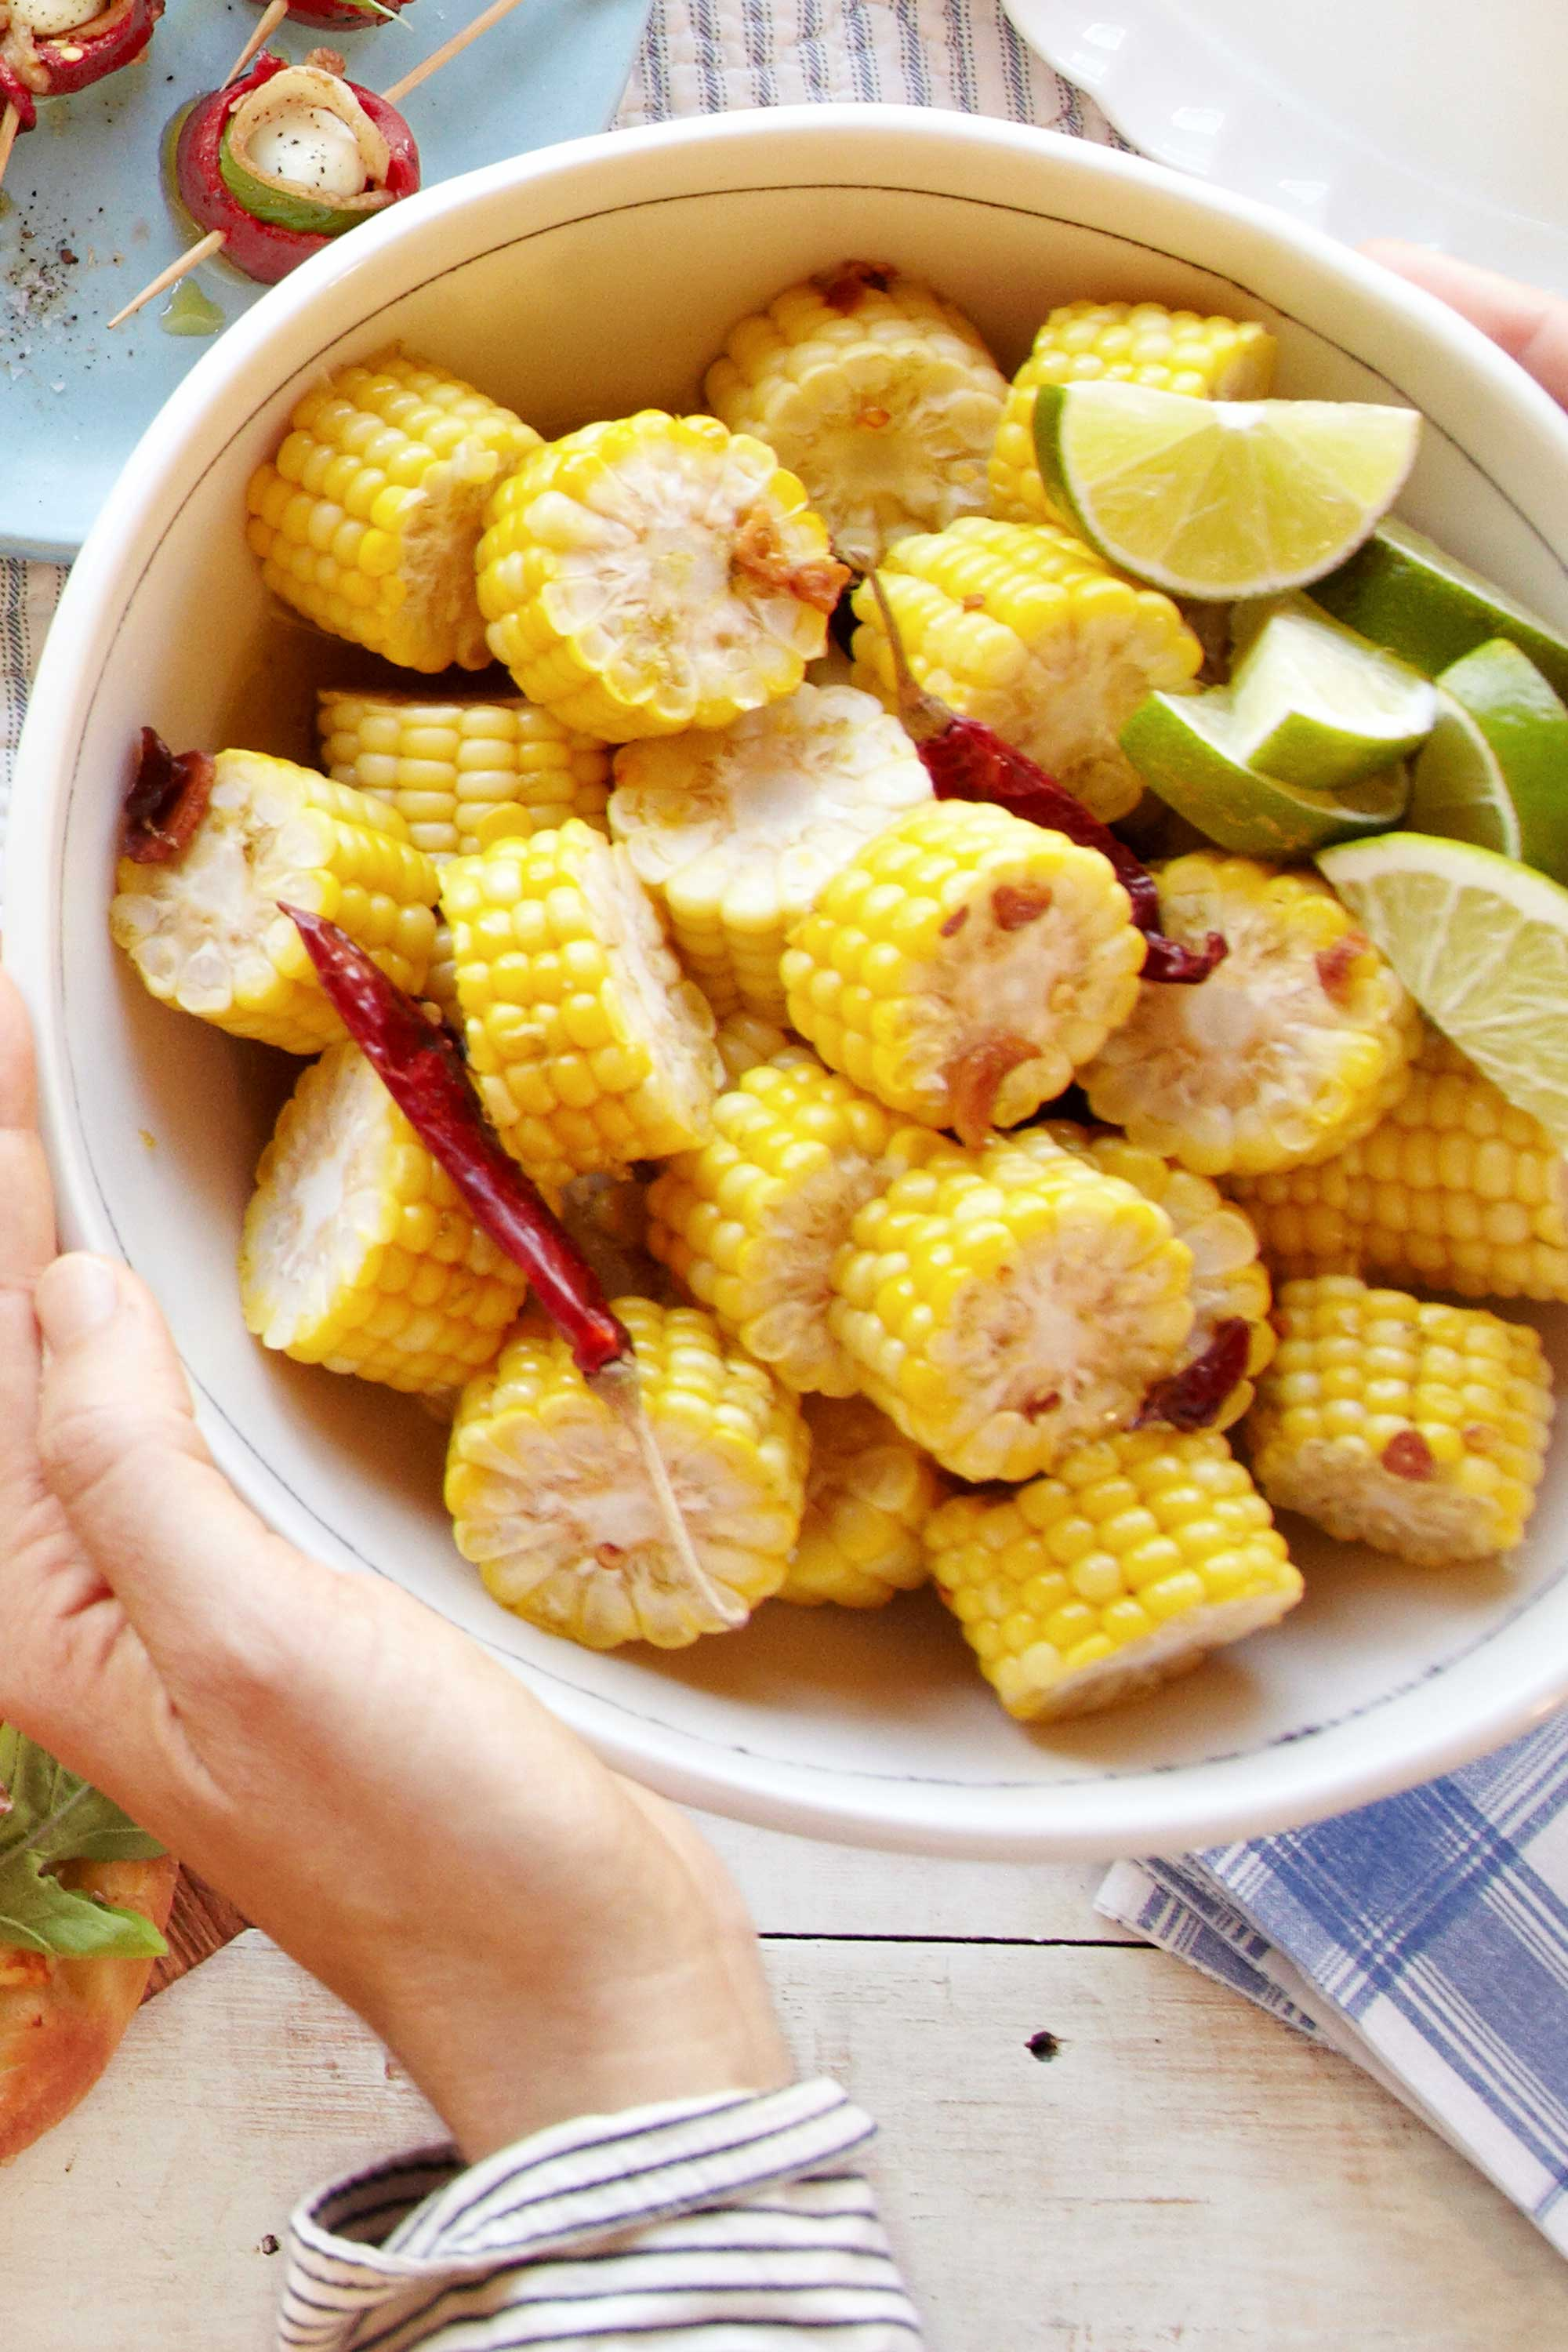 75 Summer Picnic Recipes Easy Food Ideas For A